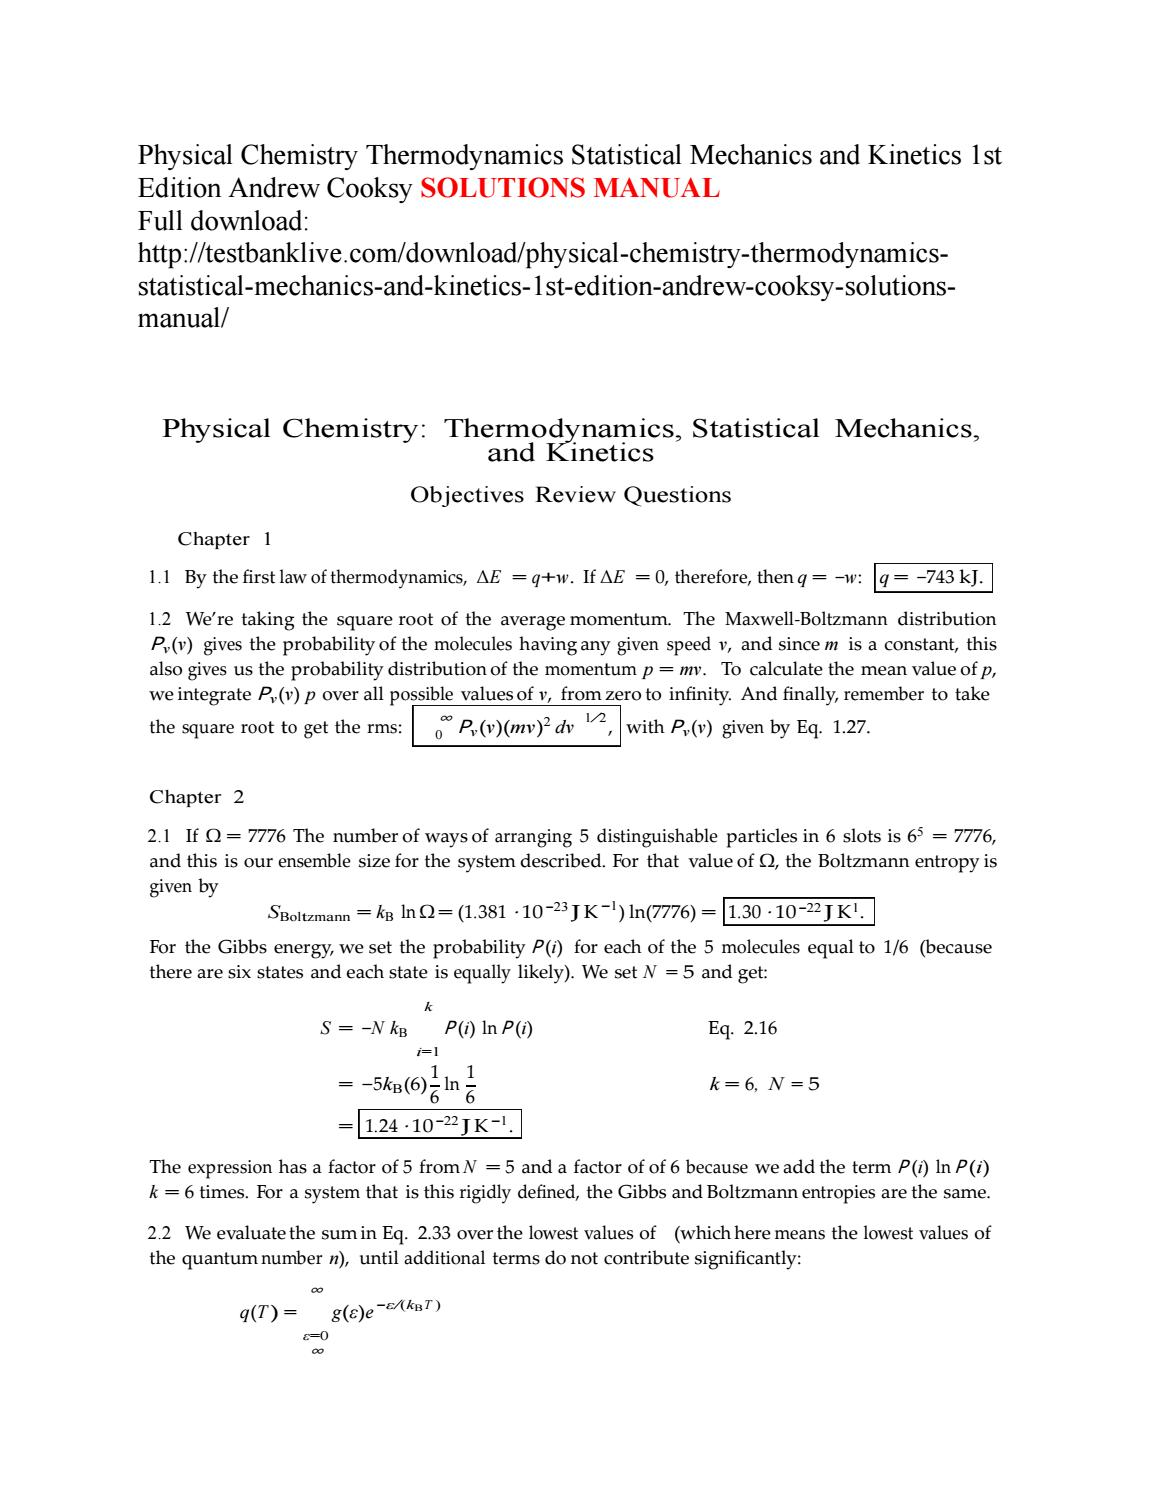 Physical chemistry thermodynamics statistical mechanics and kinetics 1st  edition andrew cooksy solut by Lind111 - issuu